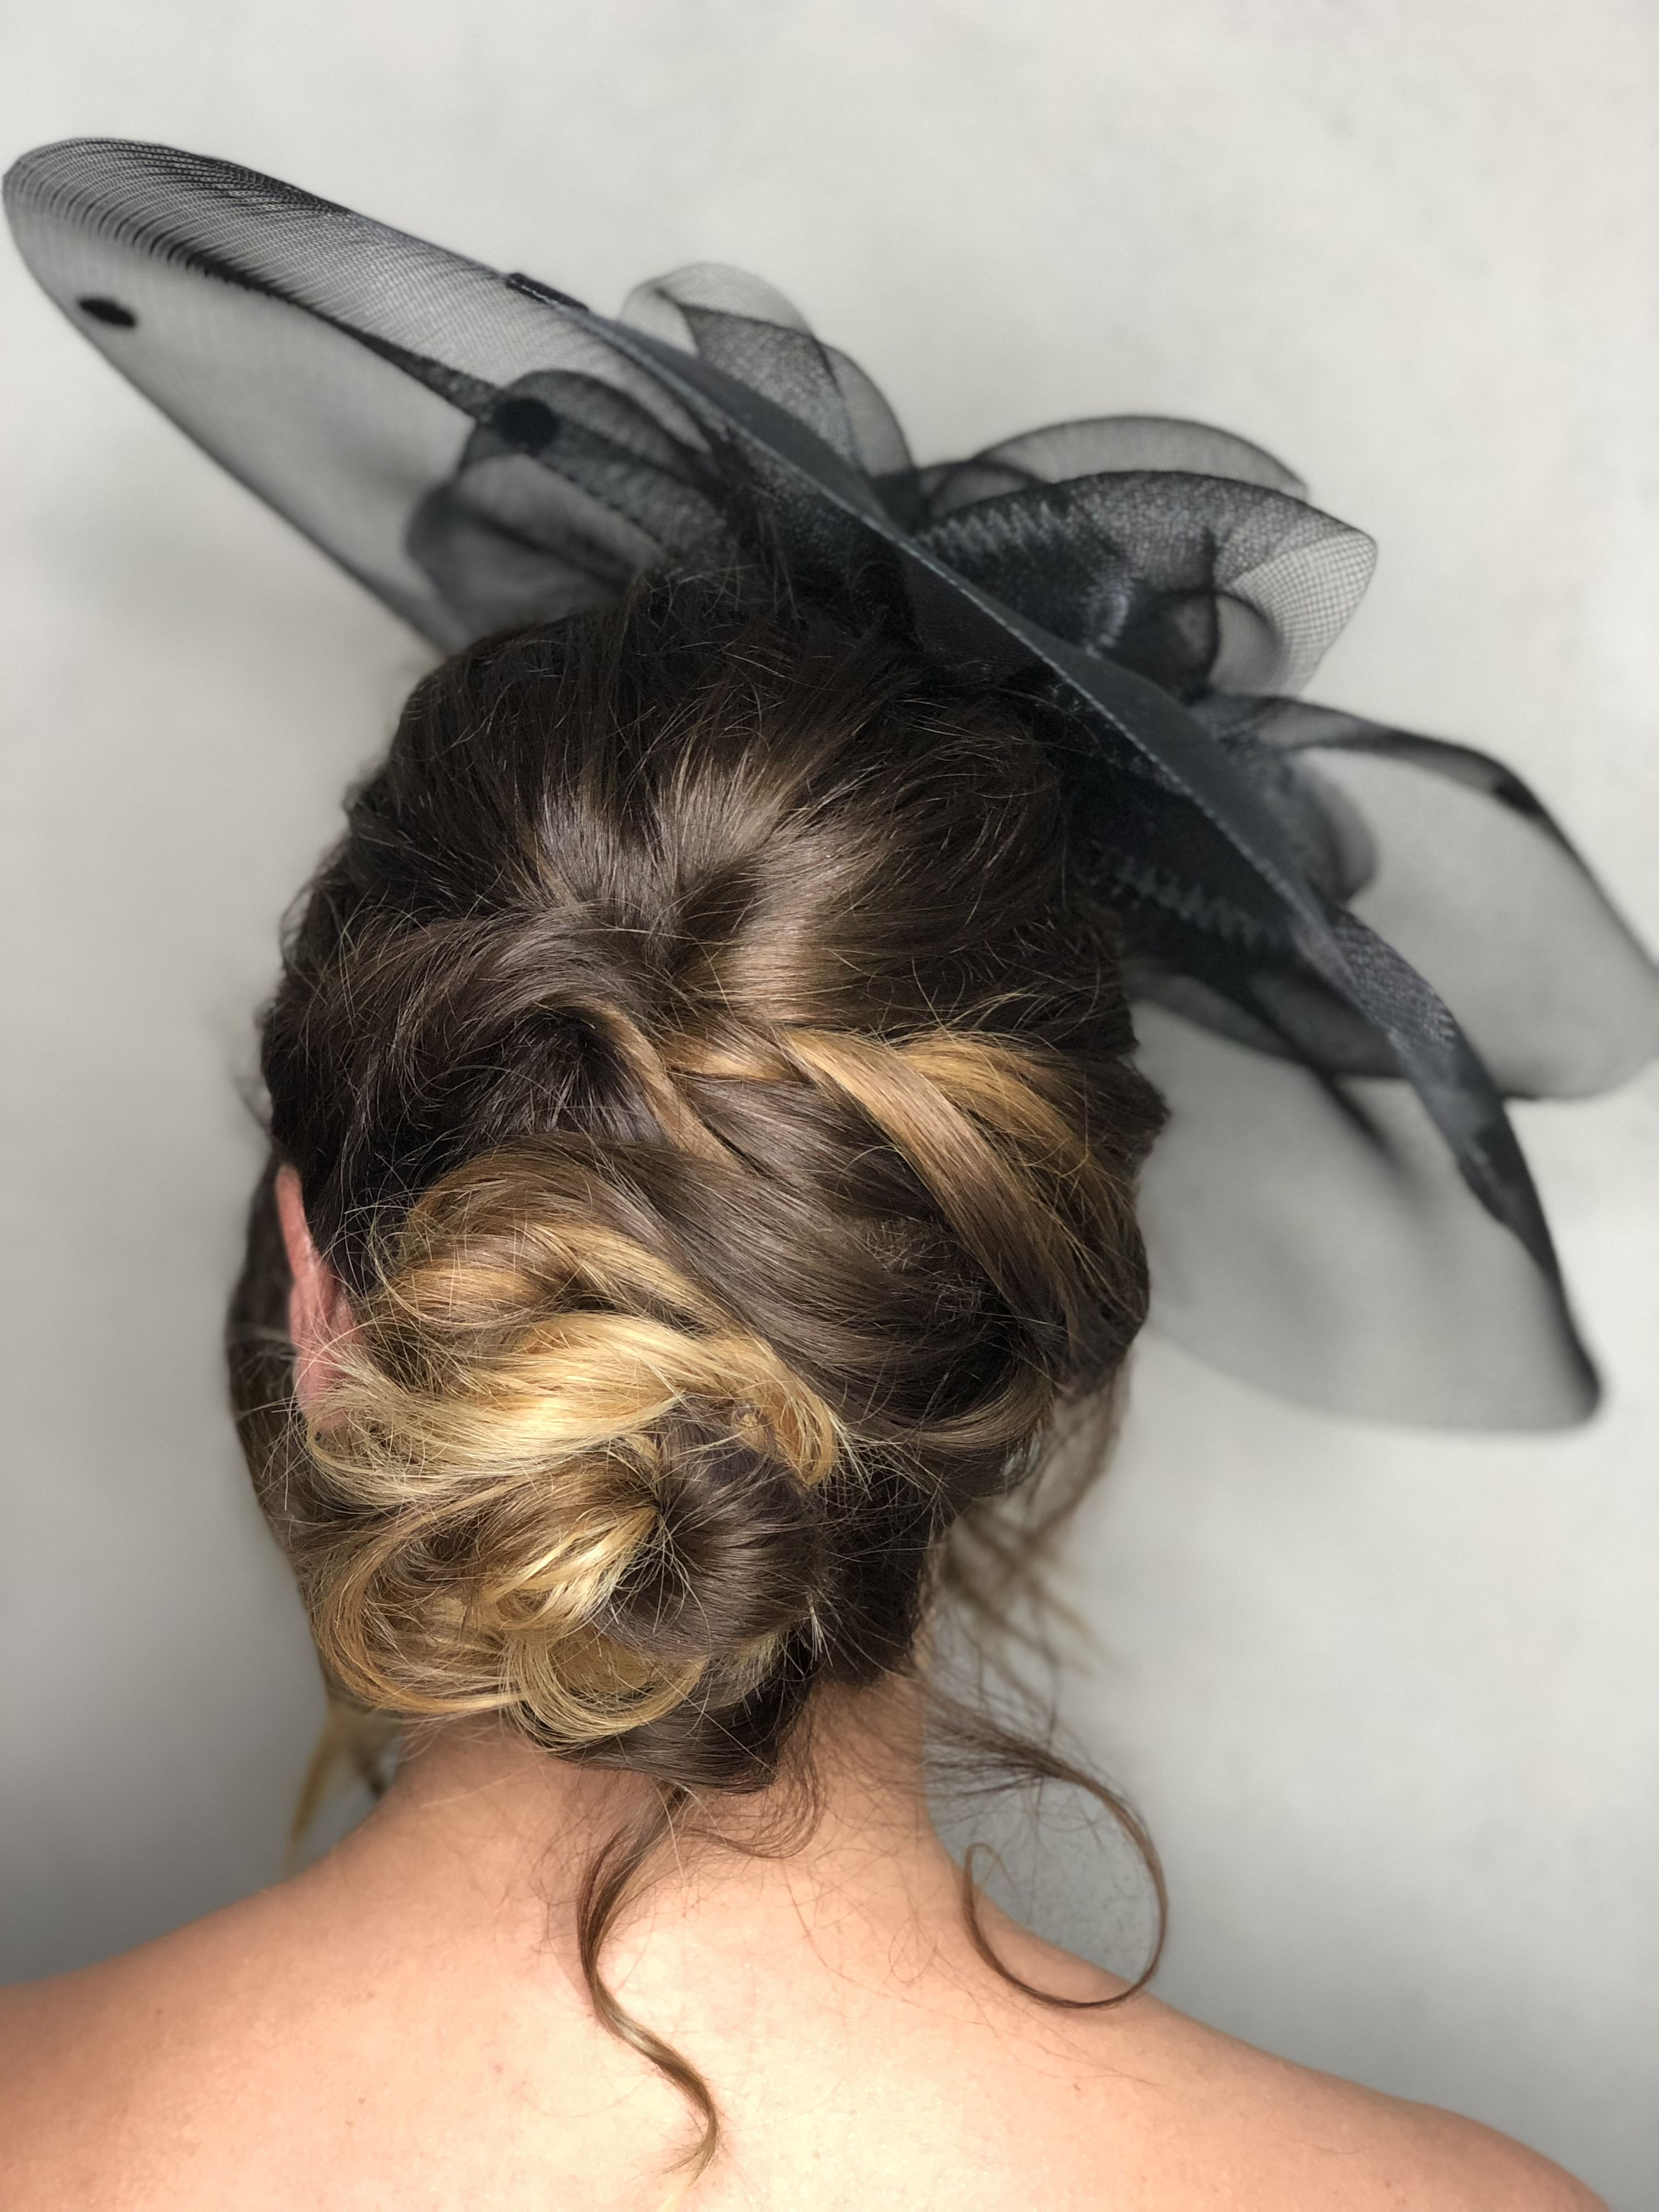 Current Side Bun Prom Hairstyles With Black Feathers For Boho Hair Up. Low Side Bun. Textured Up Do. Hairme (View 9 of 20)